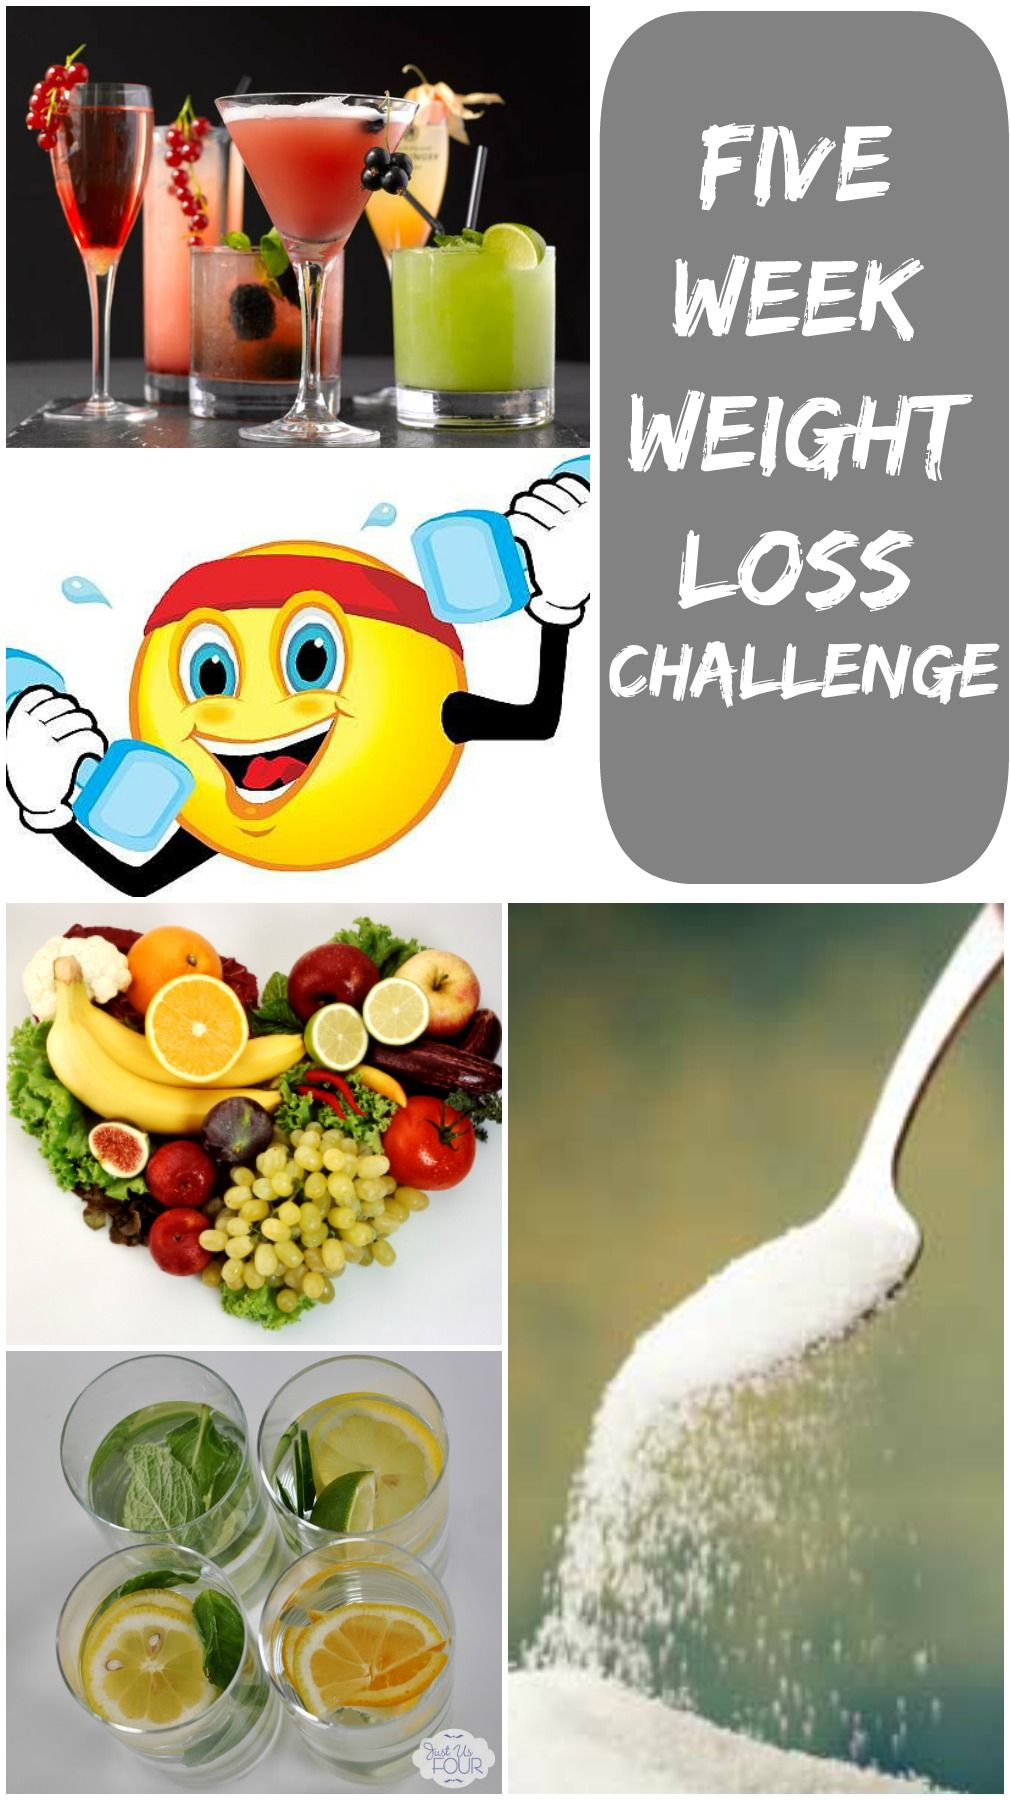 A Five Week Weight Loss Competition Where You Compete With Friends